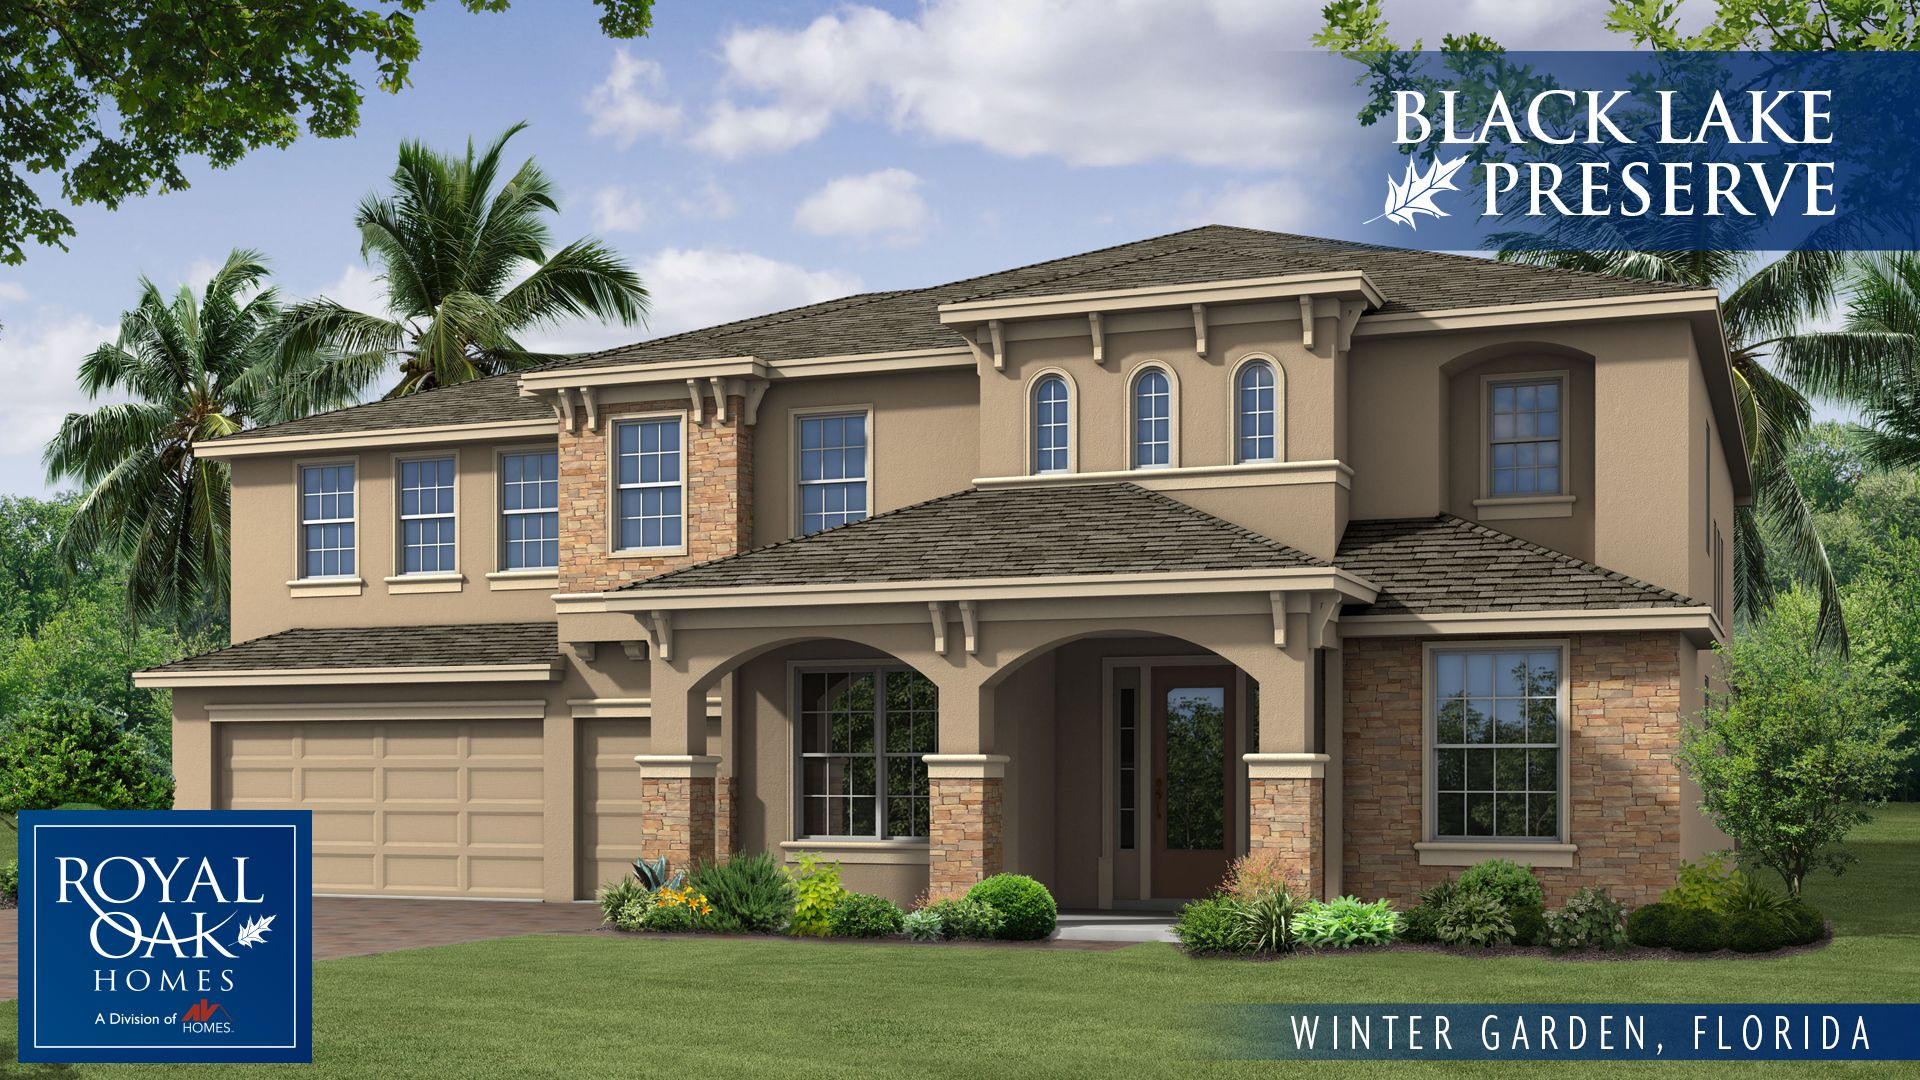 House For Sale In Black Lake Preserve By Royal Oak Homes. Royal Oak Homes  Home For Sale In Winter Garden, FL